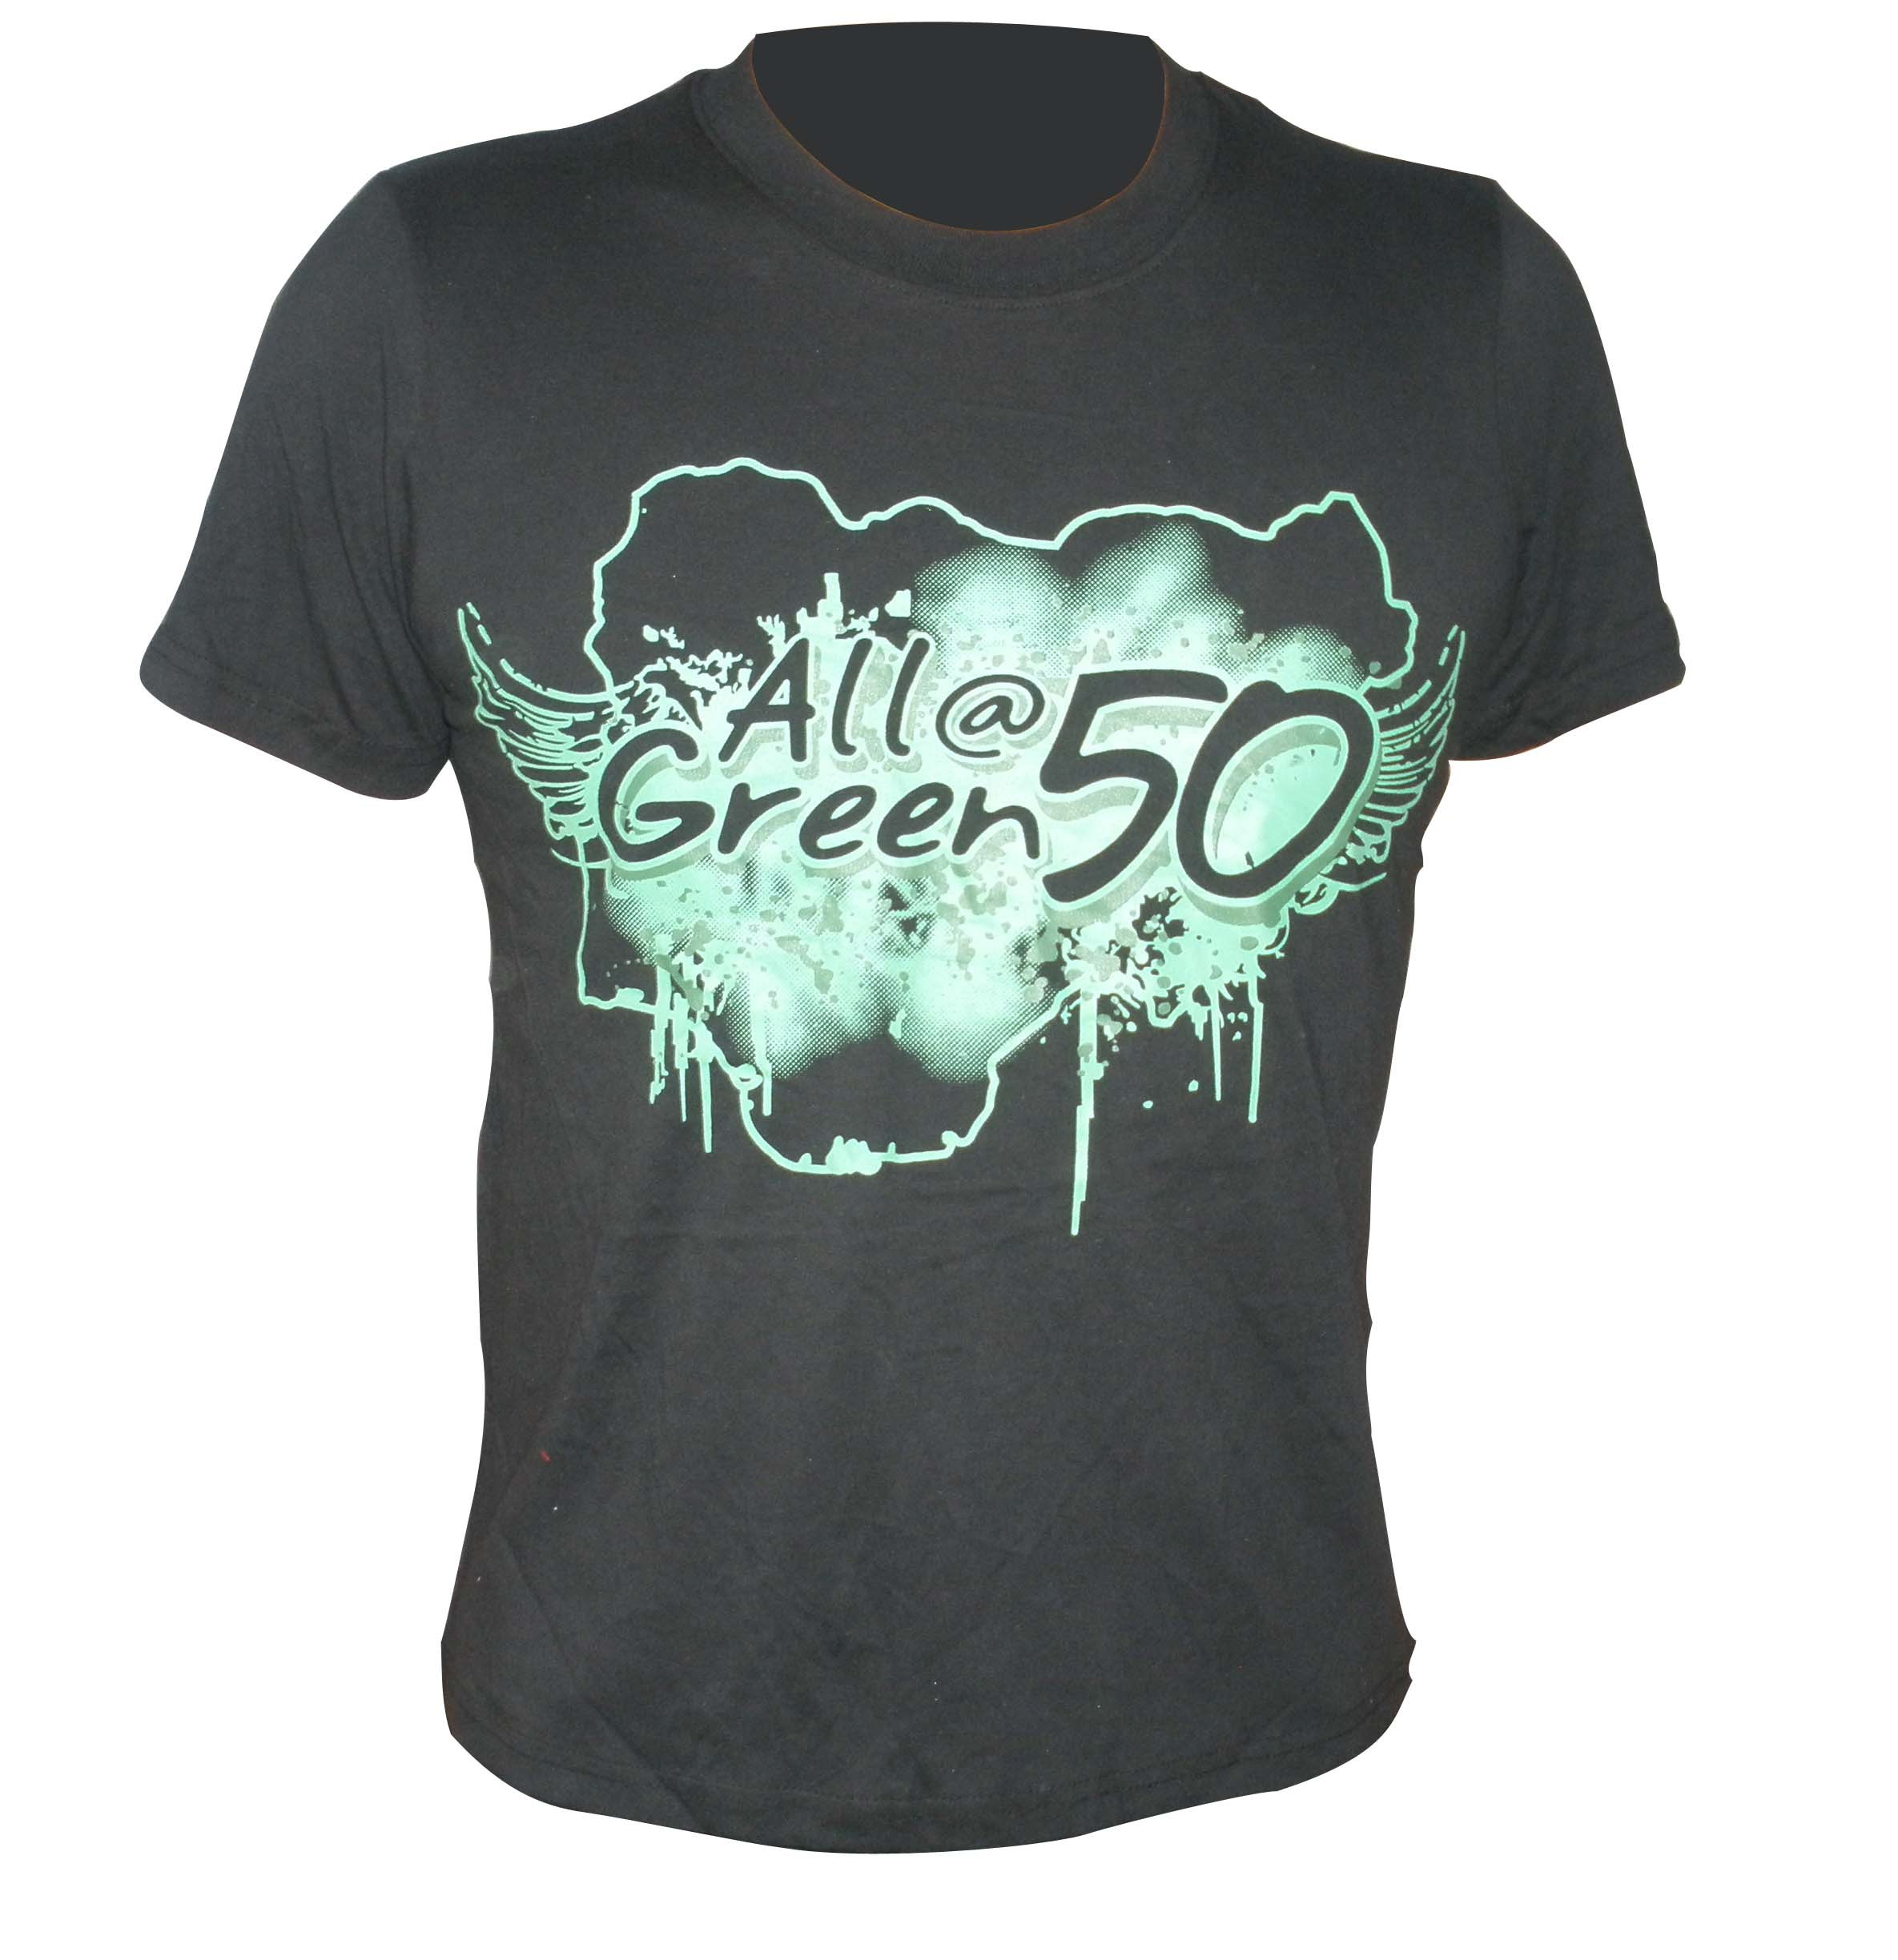 Women 39 s t shirts s fashion industry co ltd page 1 for Screen print on t shirts